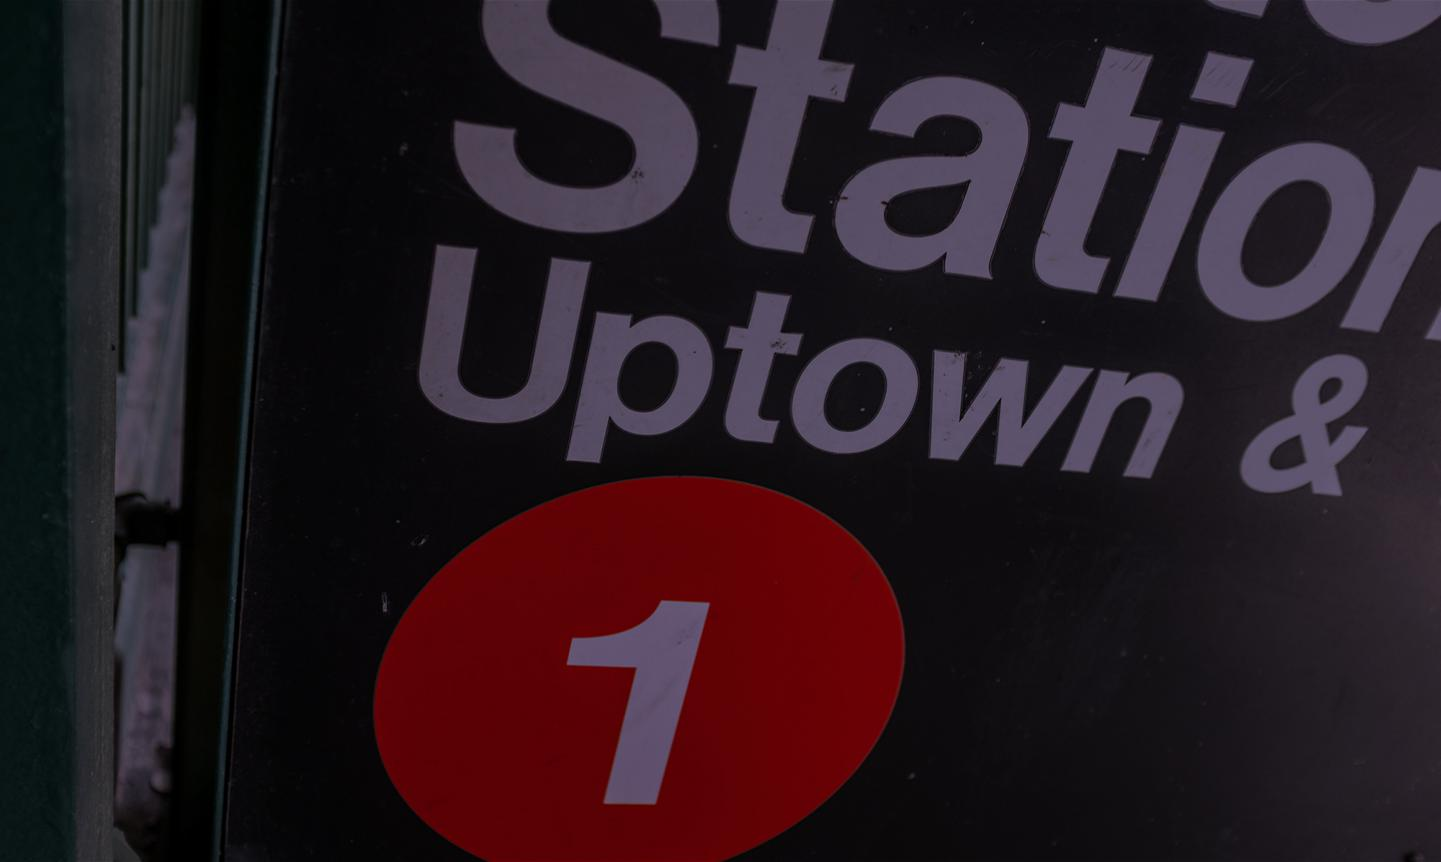 A subway station sign calling out the Uptown stop.